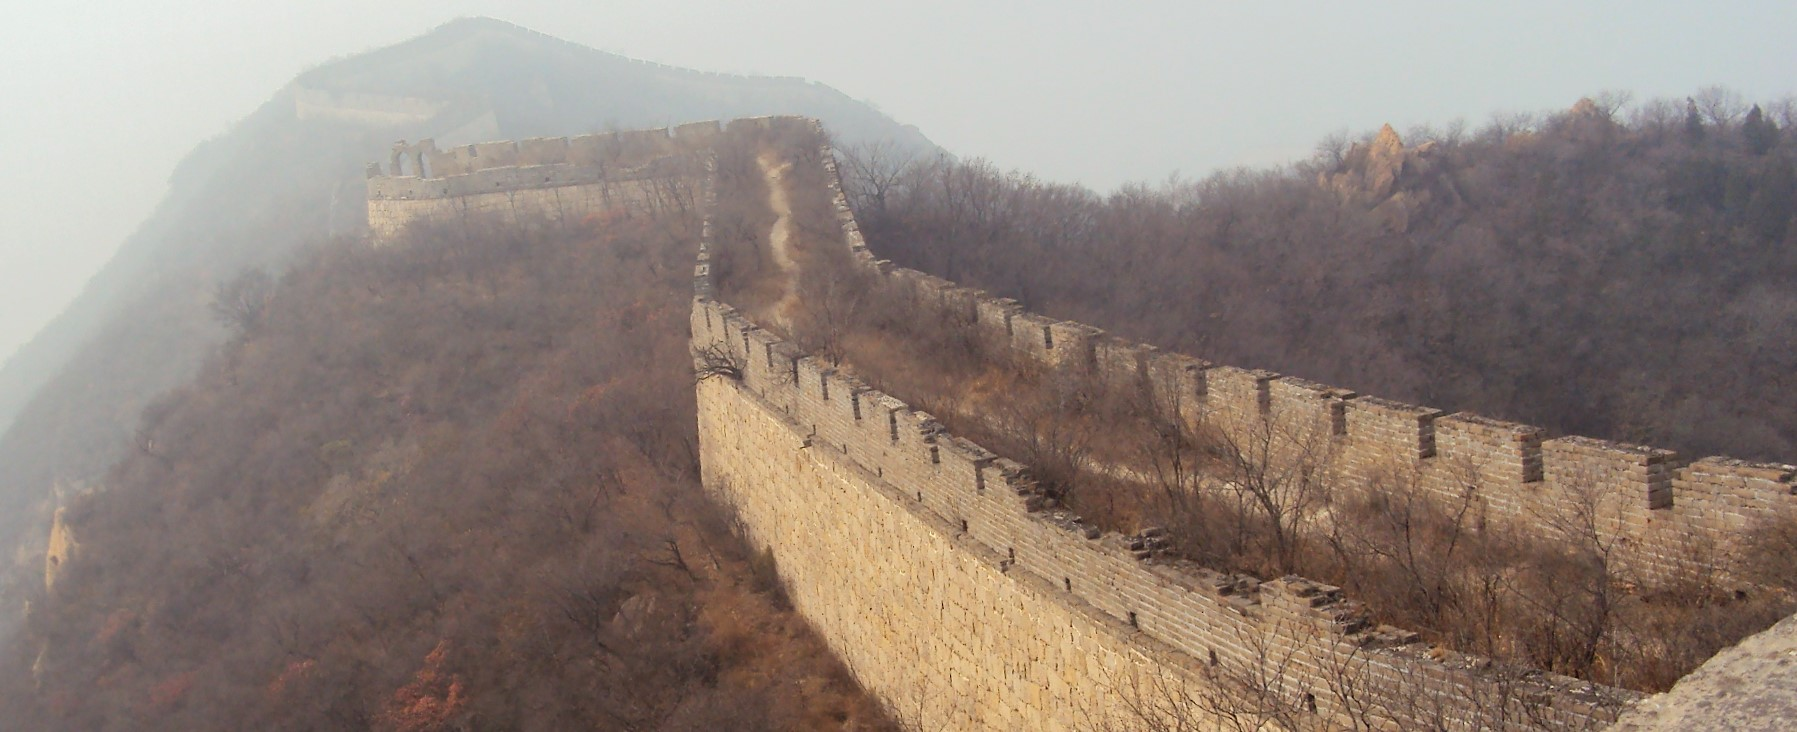 Internet marketing within the Great Wall